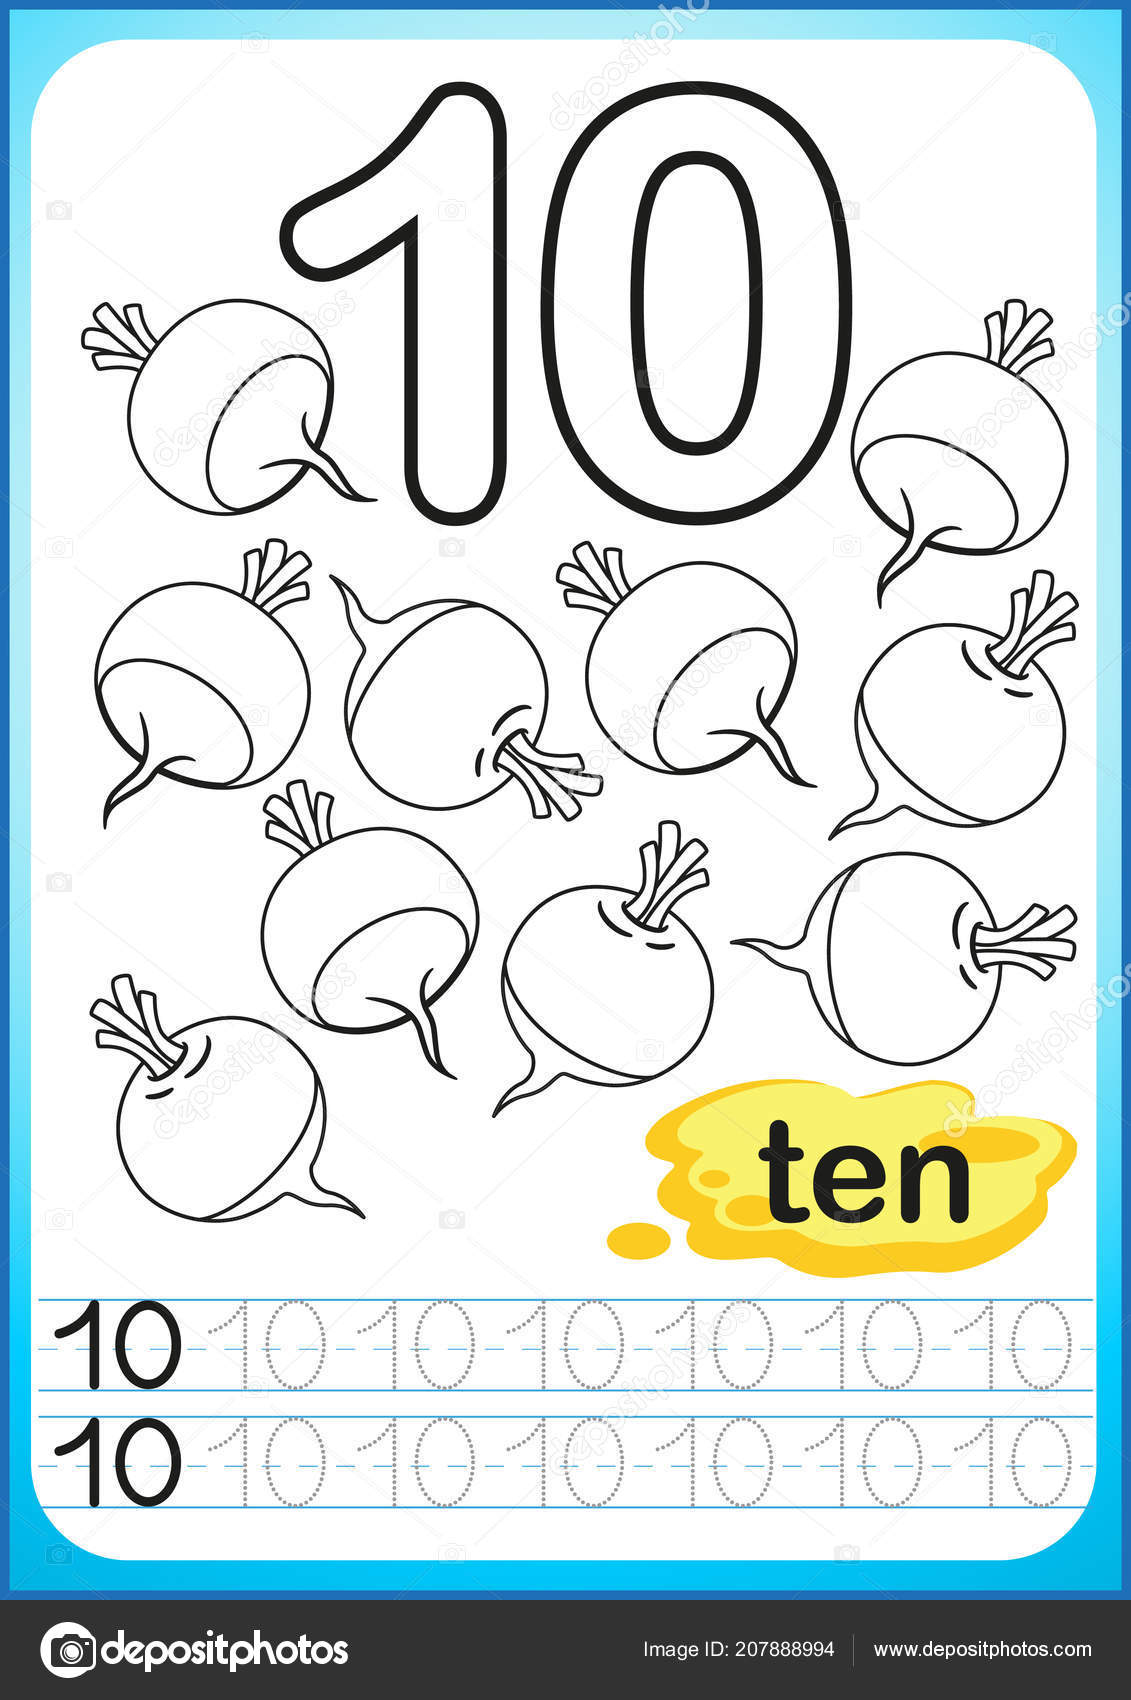 printable worksheet kindergarten preschool exercises writing numbers  printable worksheet for kindergarten and preschool exercises for writing  numbers simple level of difficulty restore dashed line and color the  picture